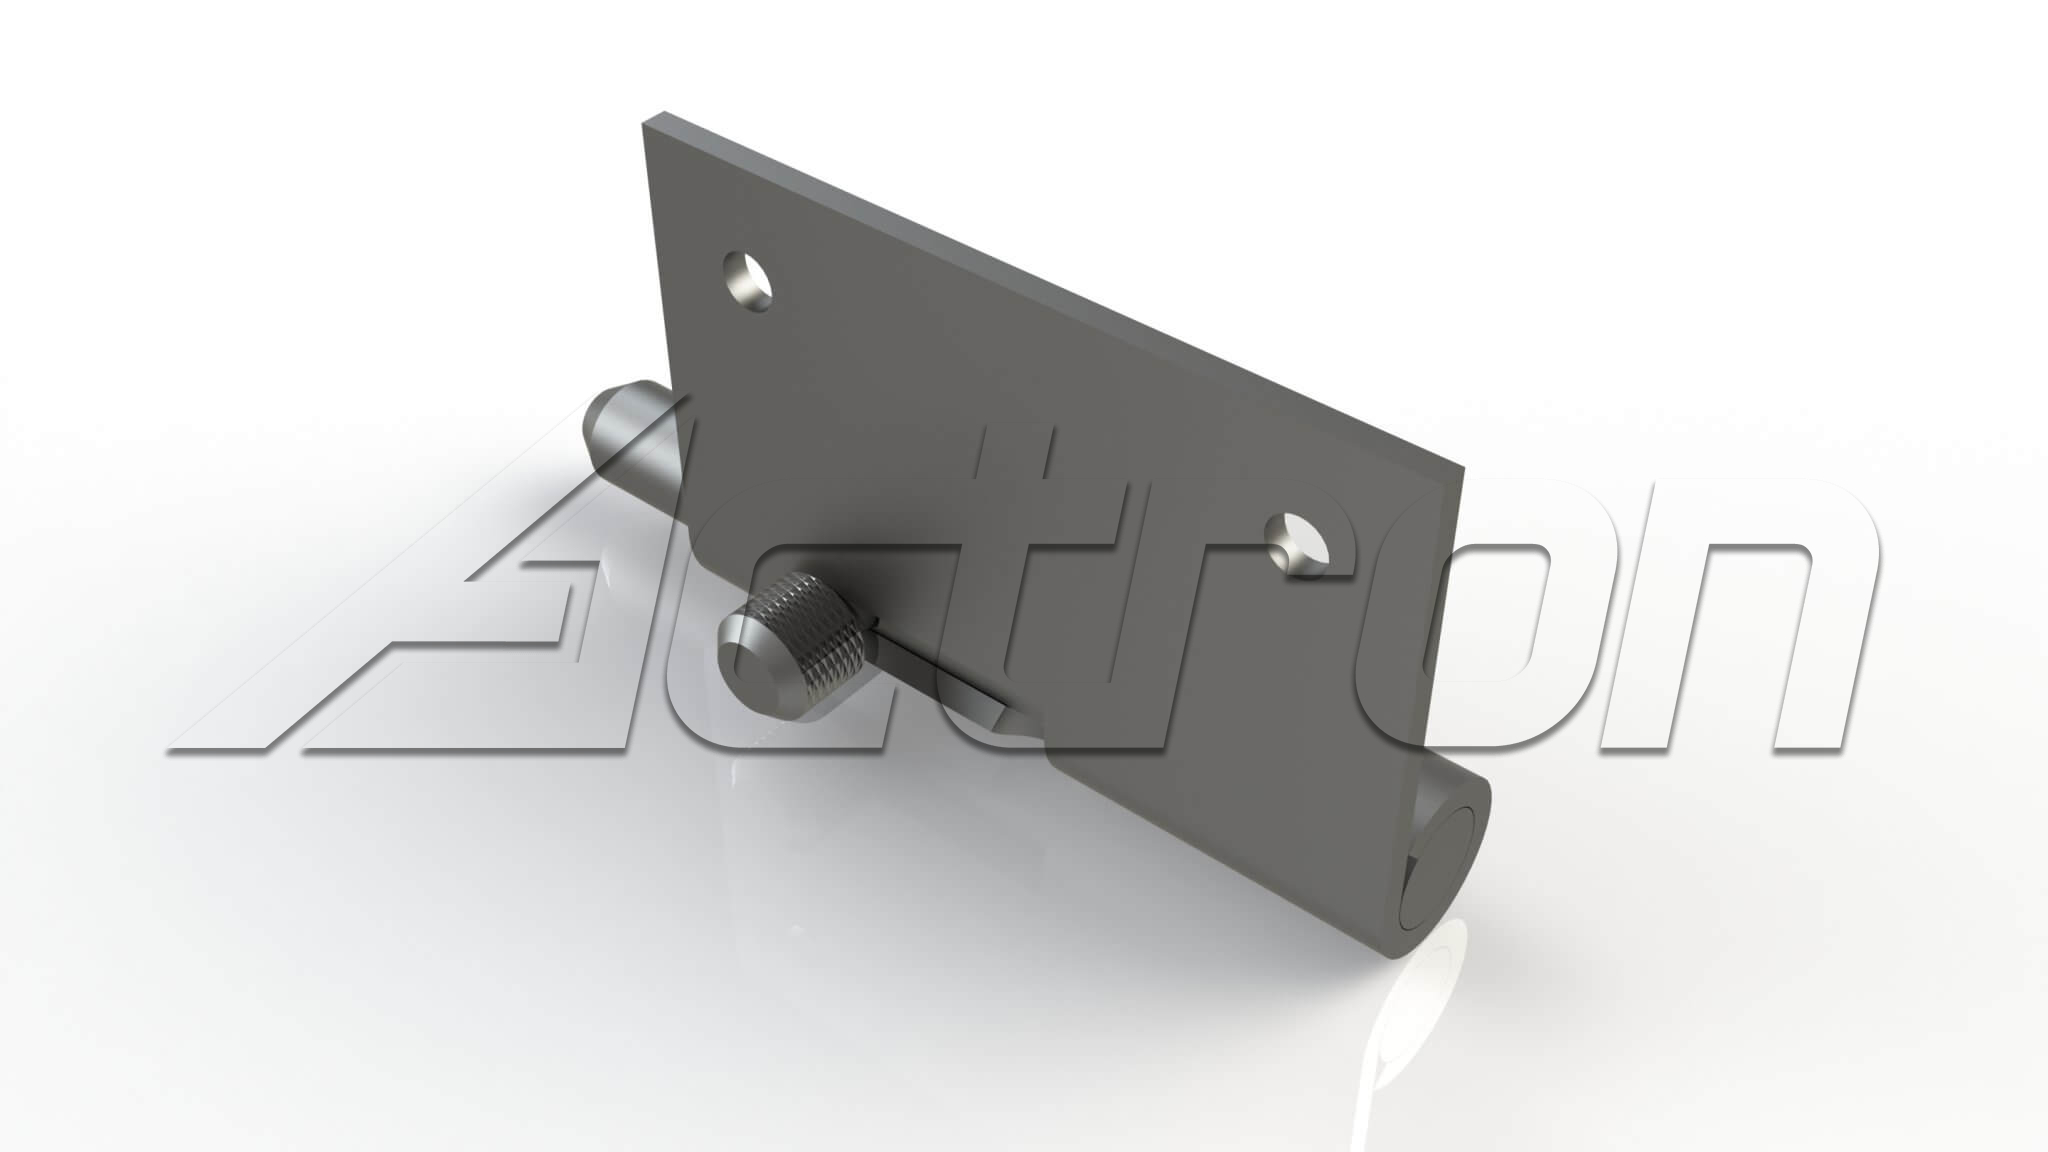 latch-8211-hinge-assy-5053-a2068.jpg